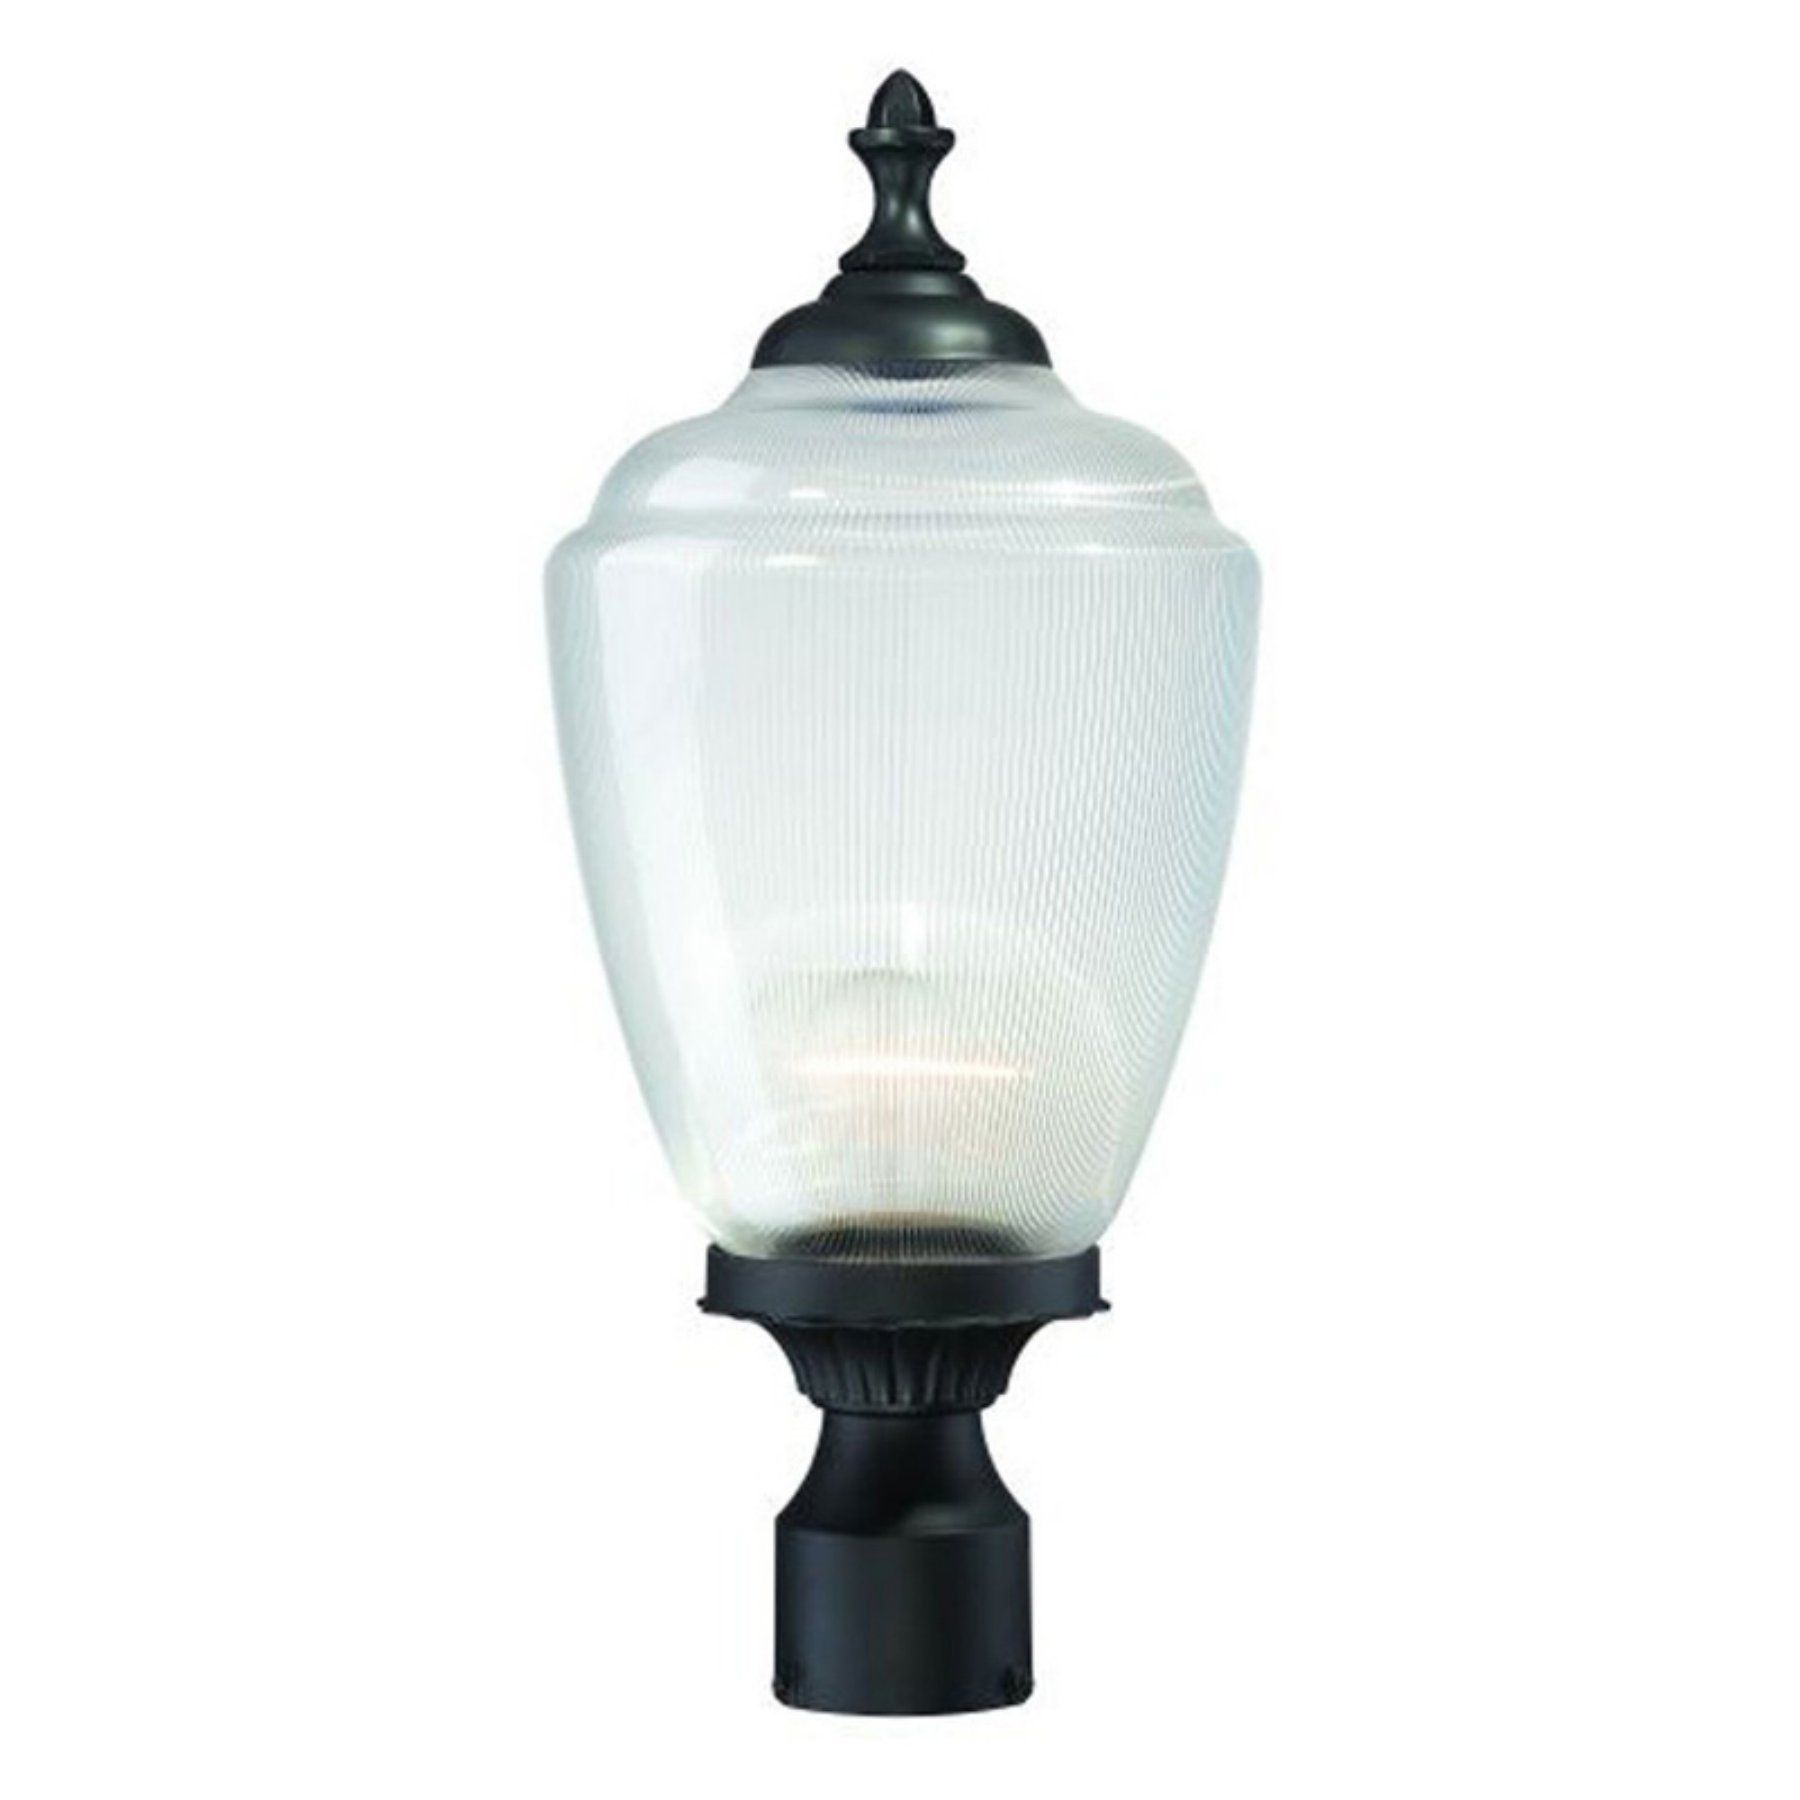 Acclaim Lighting Acorn Outdoor Post Mount Light Fixture 5367BK CL